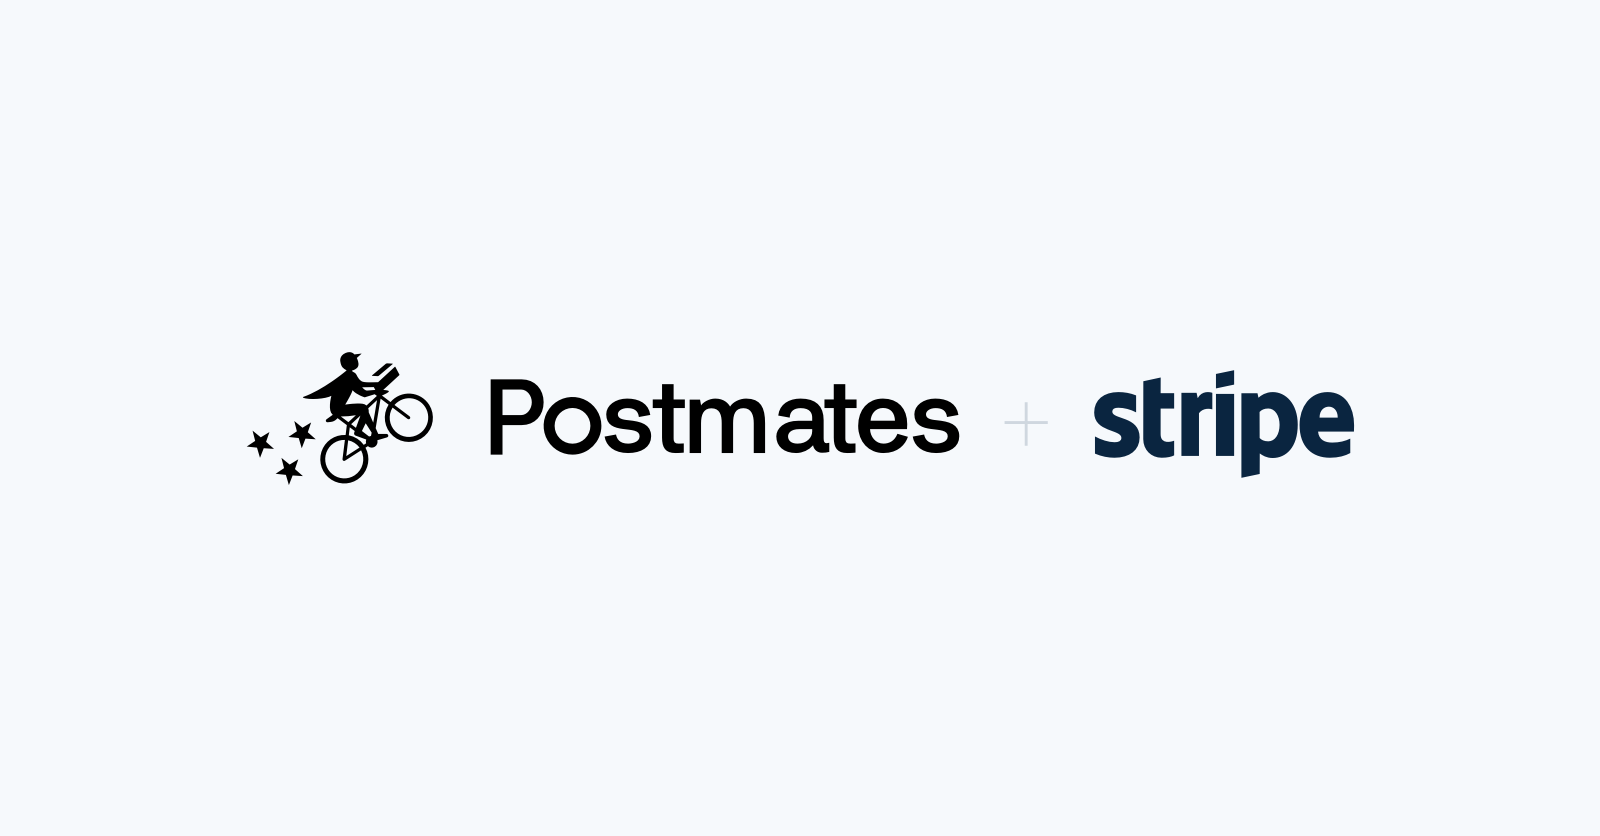 postmates and stripe logos